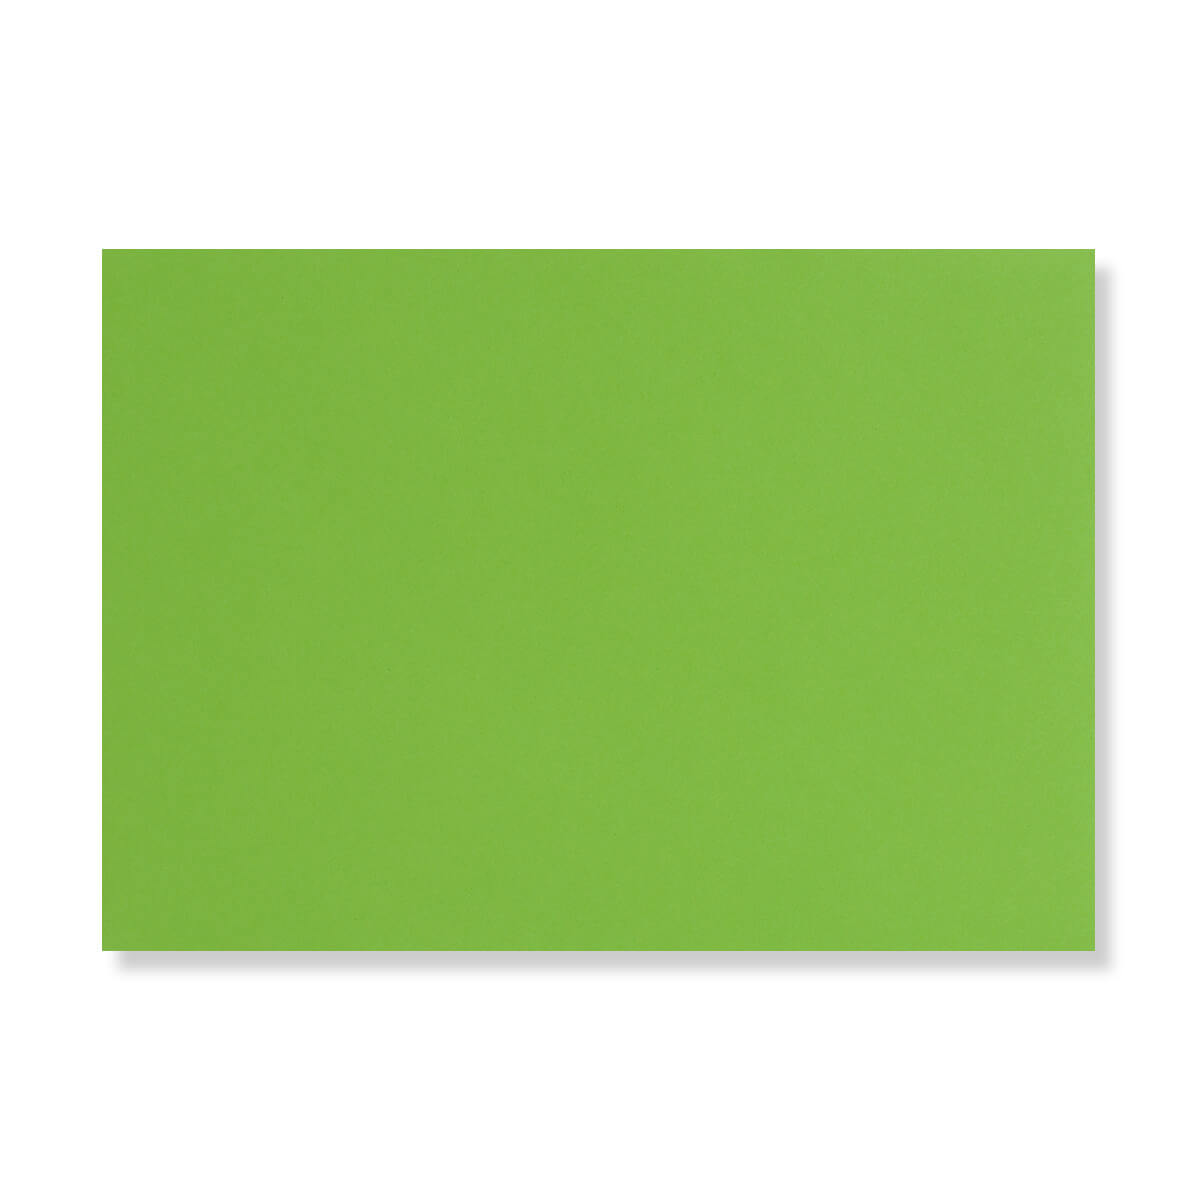 MID GREEN 152 x 216mm ENVELOPES 120GSM